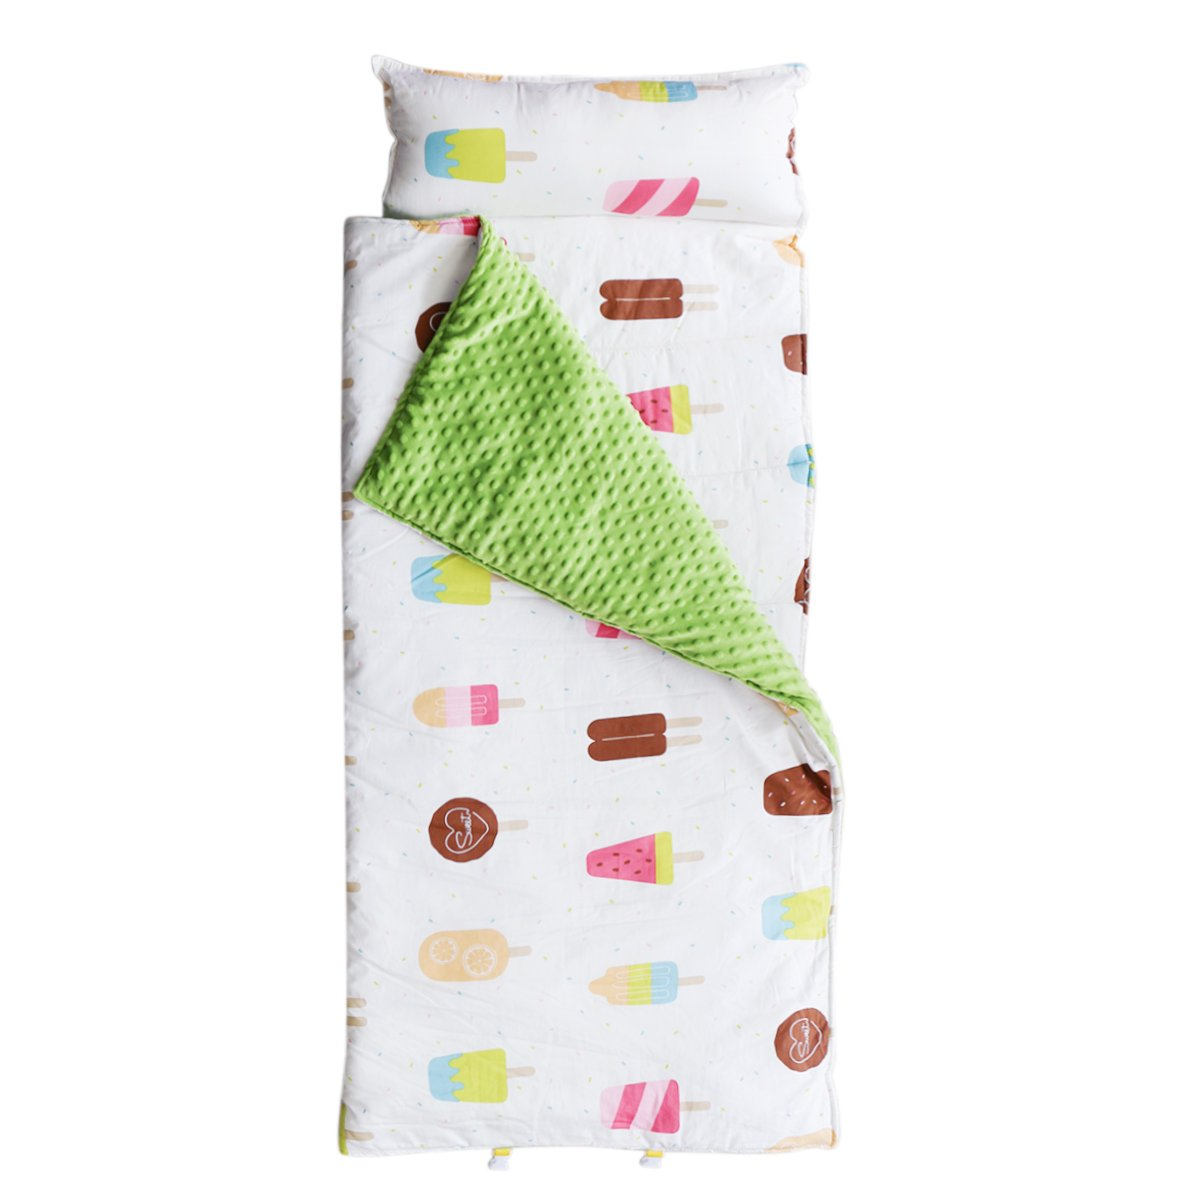 Hi Sprout Kids Toddler Lightweight and Soft Nap Mat- Minky Dot& Cotton-Ice cream